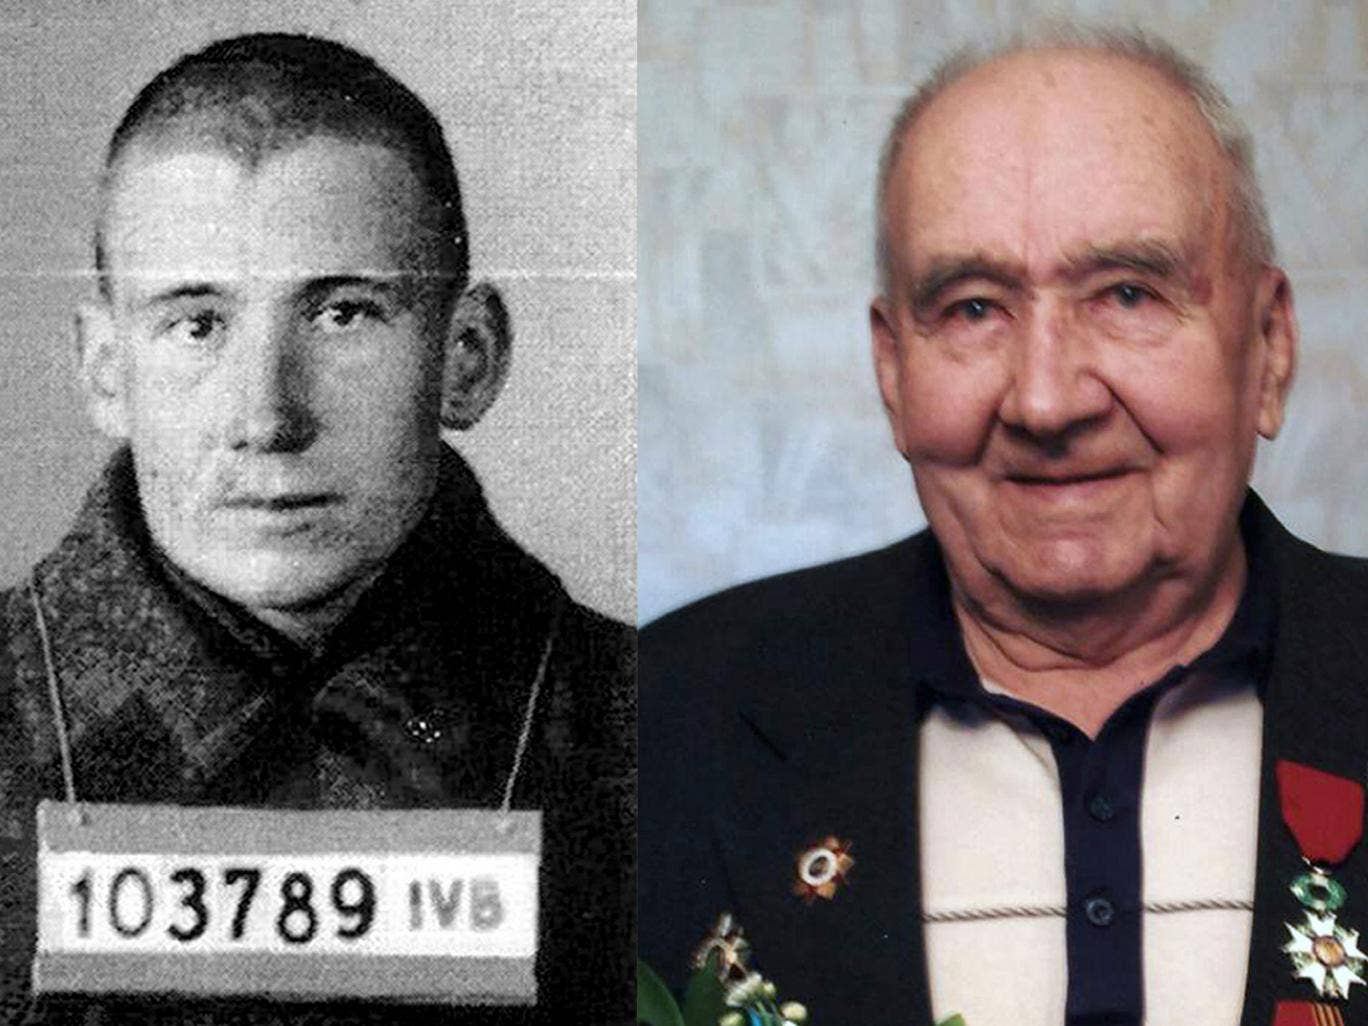 Nikolai Vasenin in 1942 during his imprisonment, and today